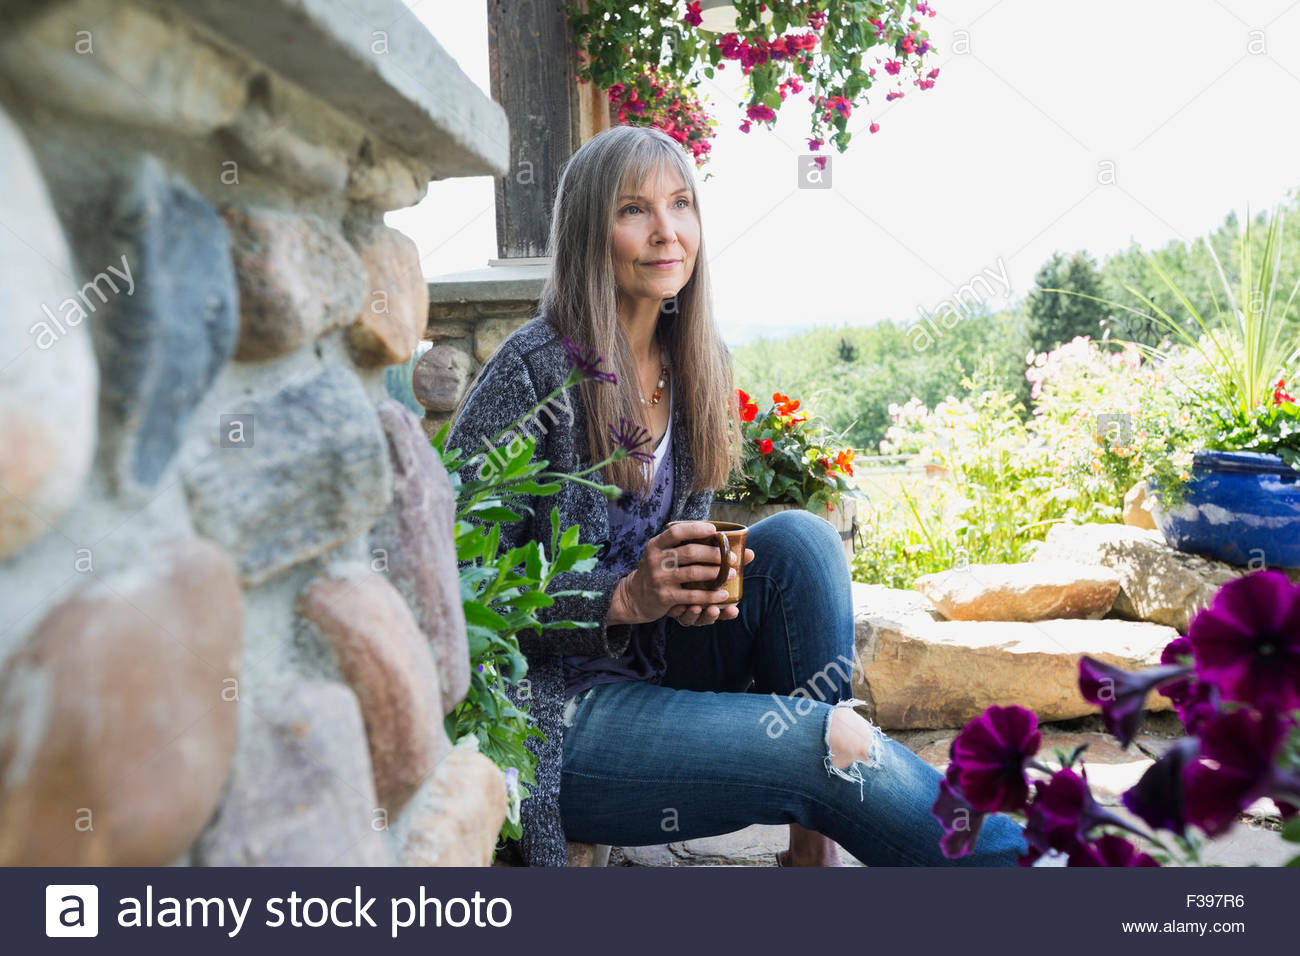 Pensive woman drinking coffee on front stoop - Stock Image